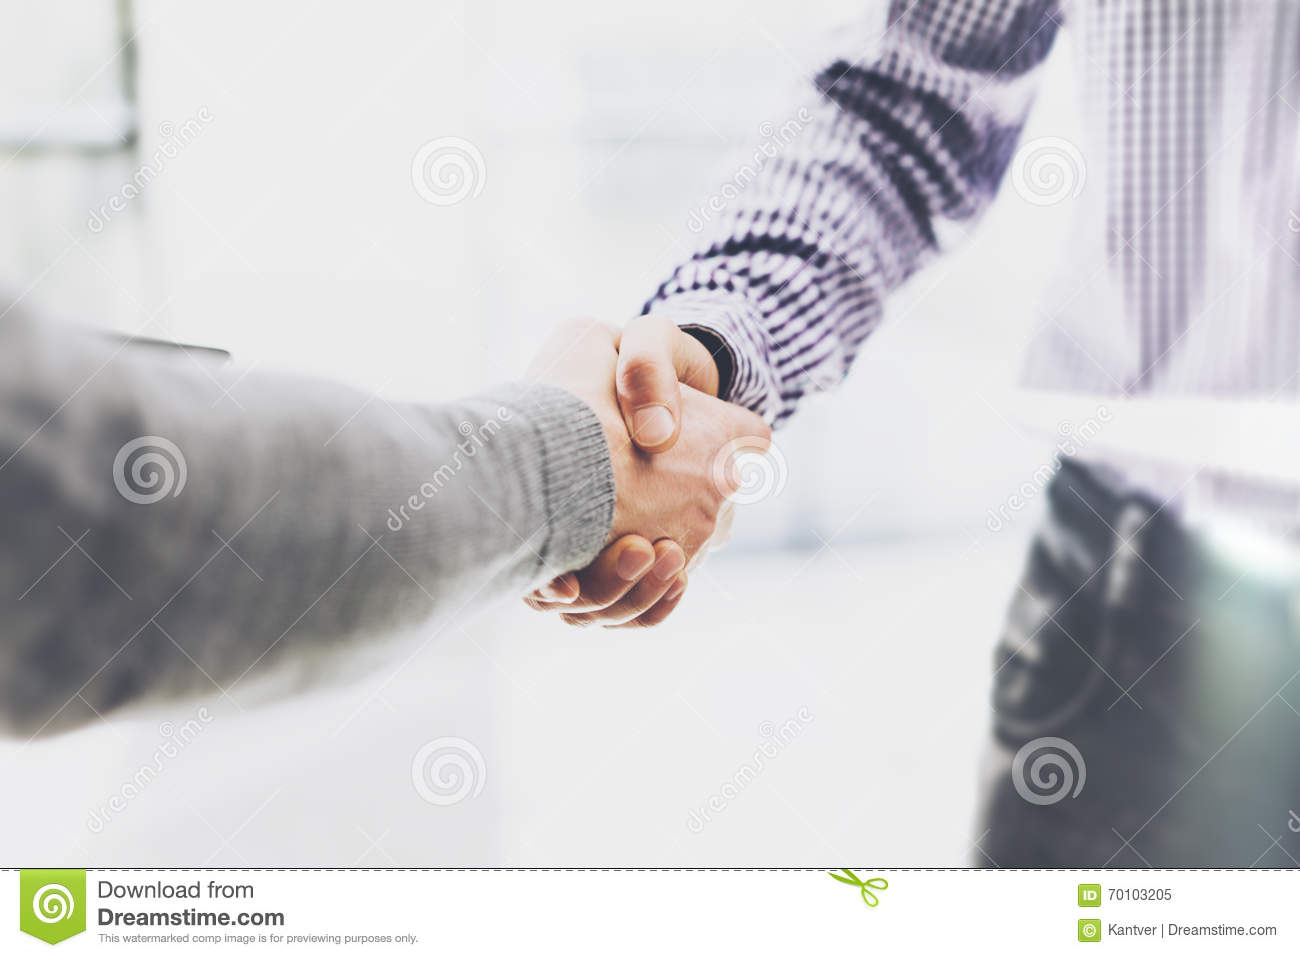 Business partnership meeting. Image businessmans handshake. Successful businessmen handshaking after good deal